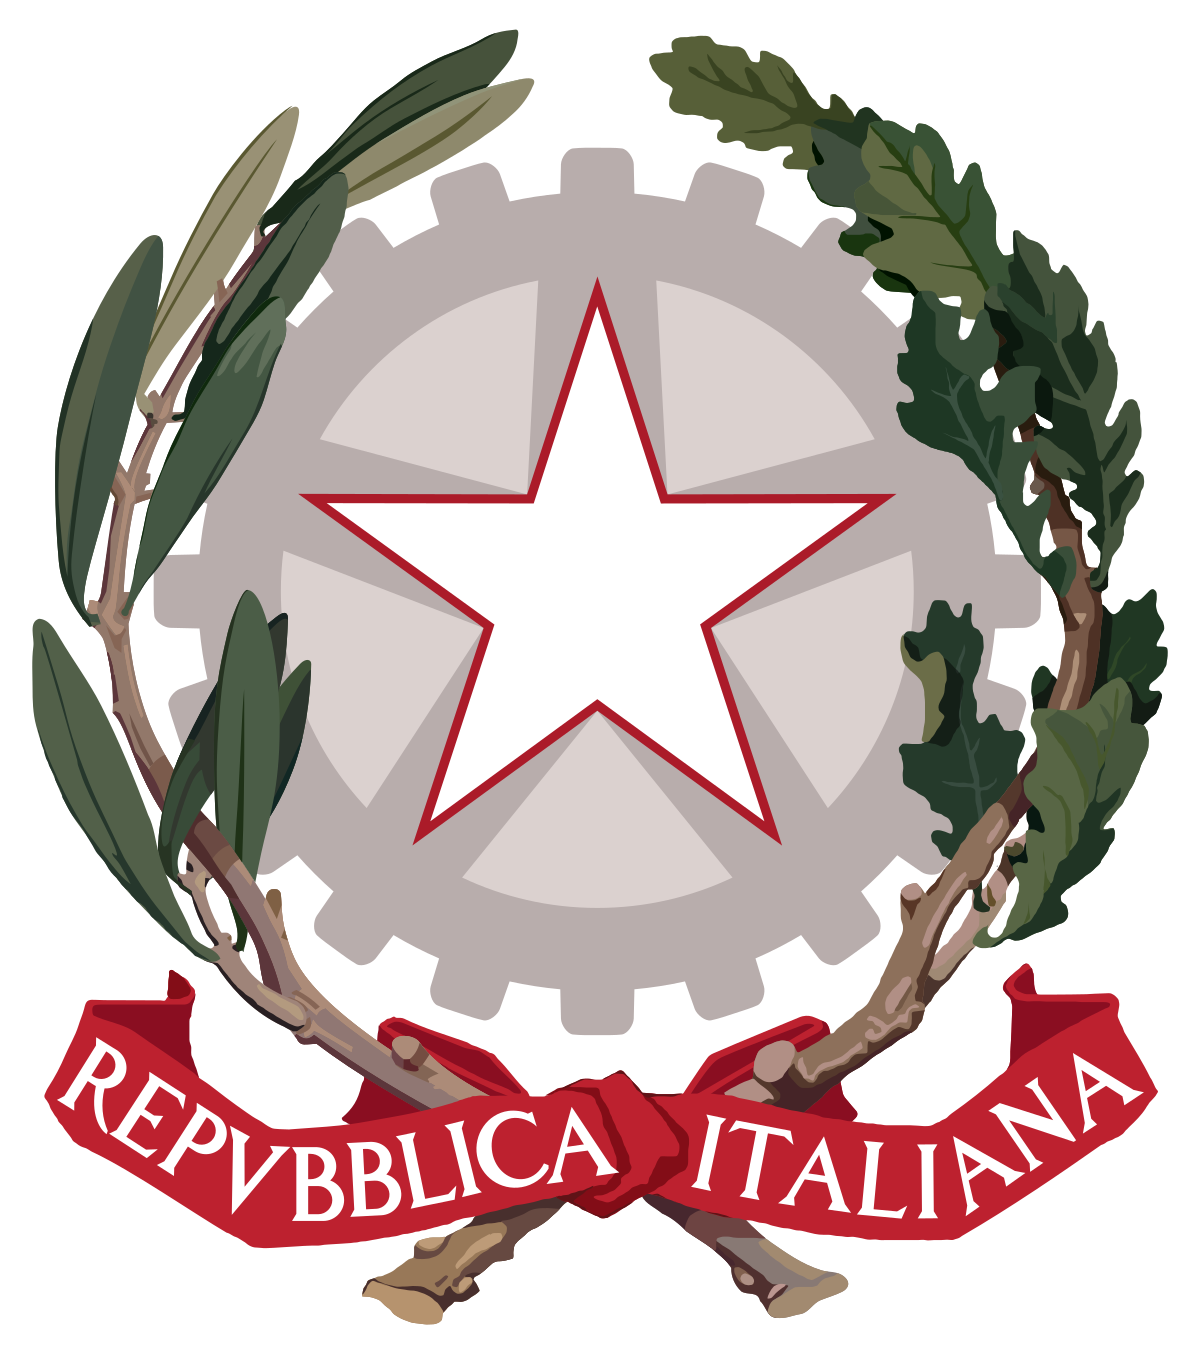 Court clipart political science. Provinces of italy wikipedia